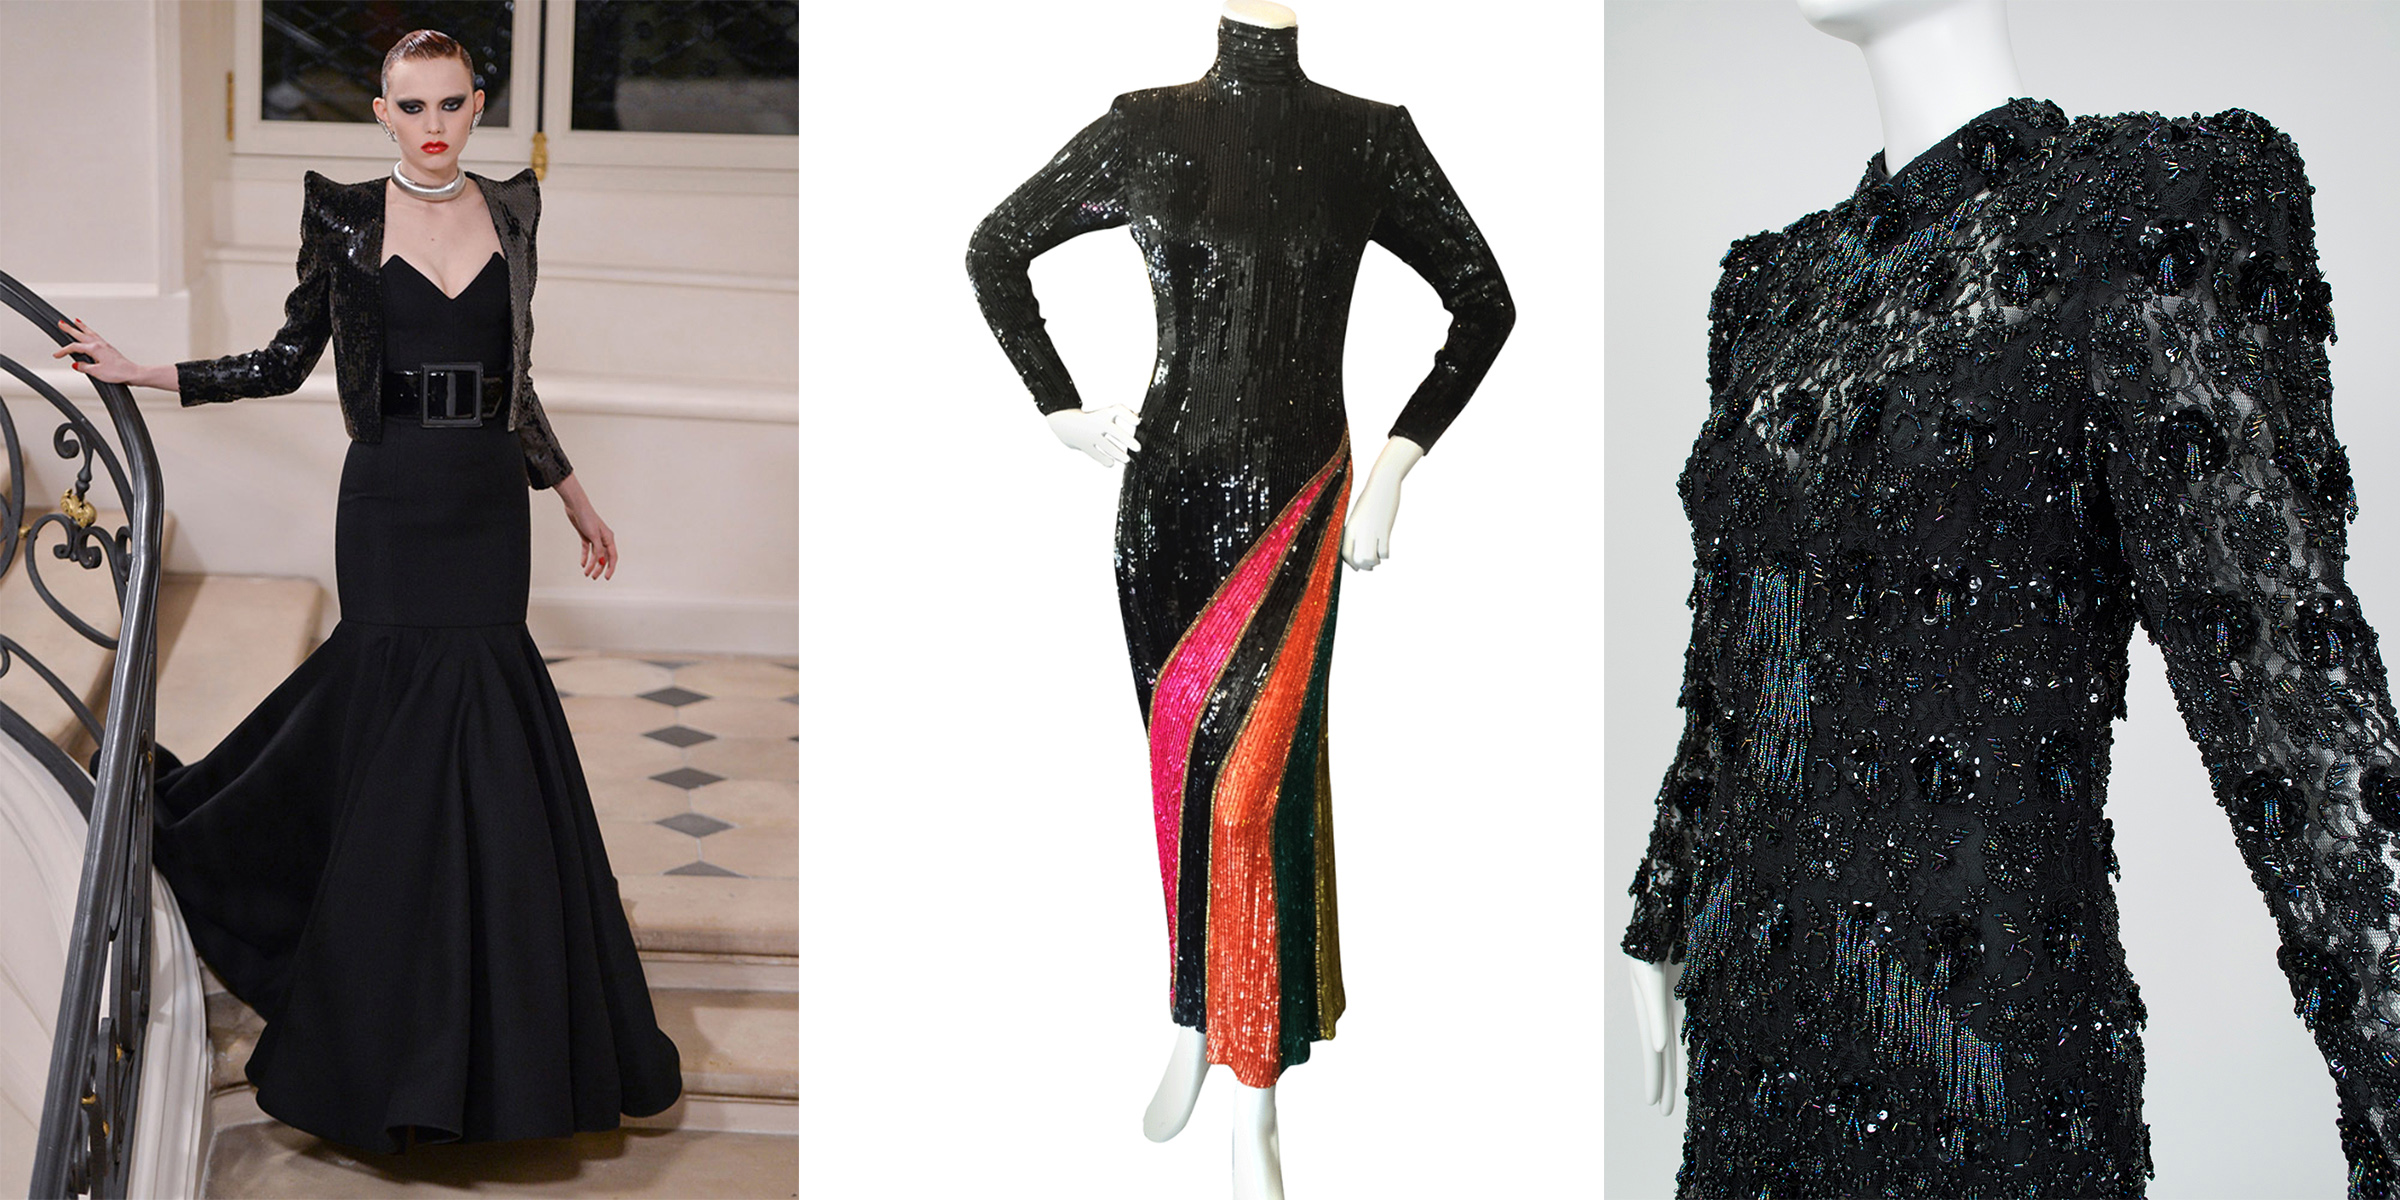 Saint Laurent gown (A/W 2016) compared with two similar vintage gowns at Black Cat Vintage.